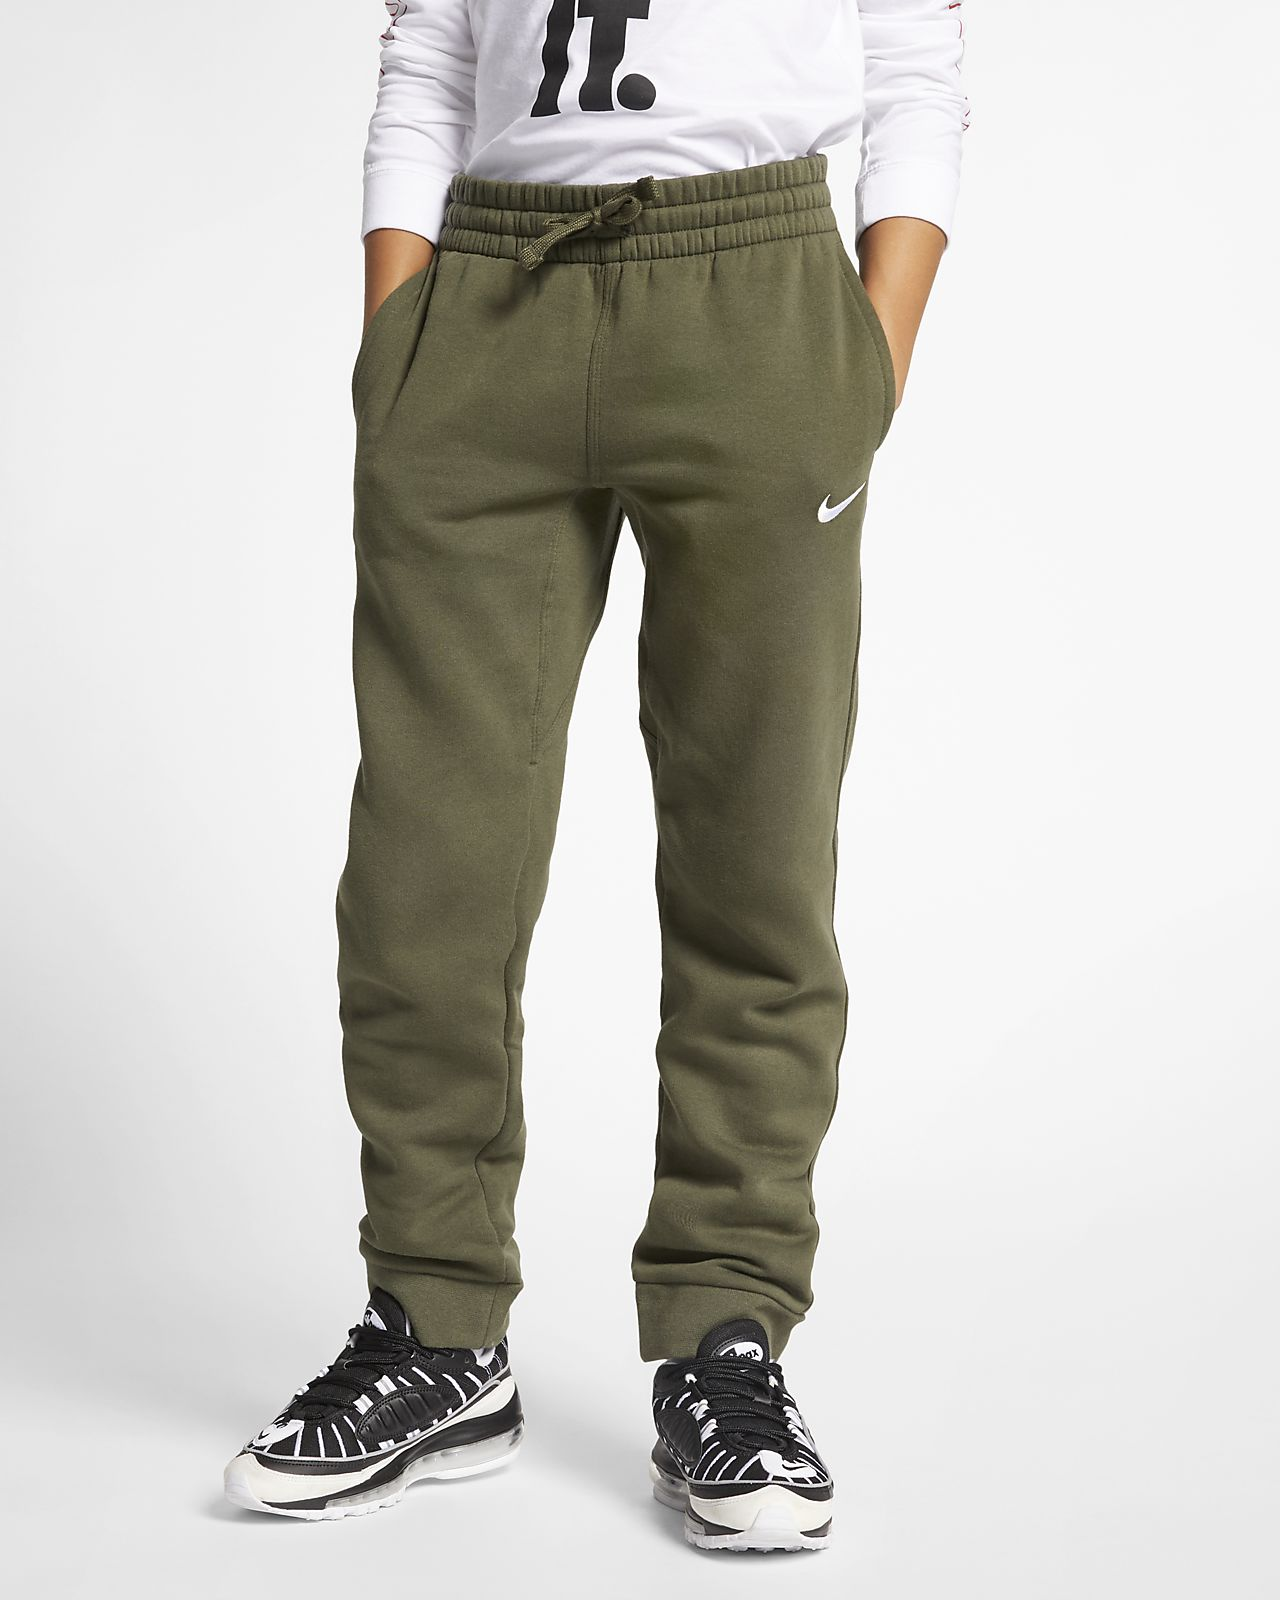 Nike Older Kids' Trousers